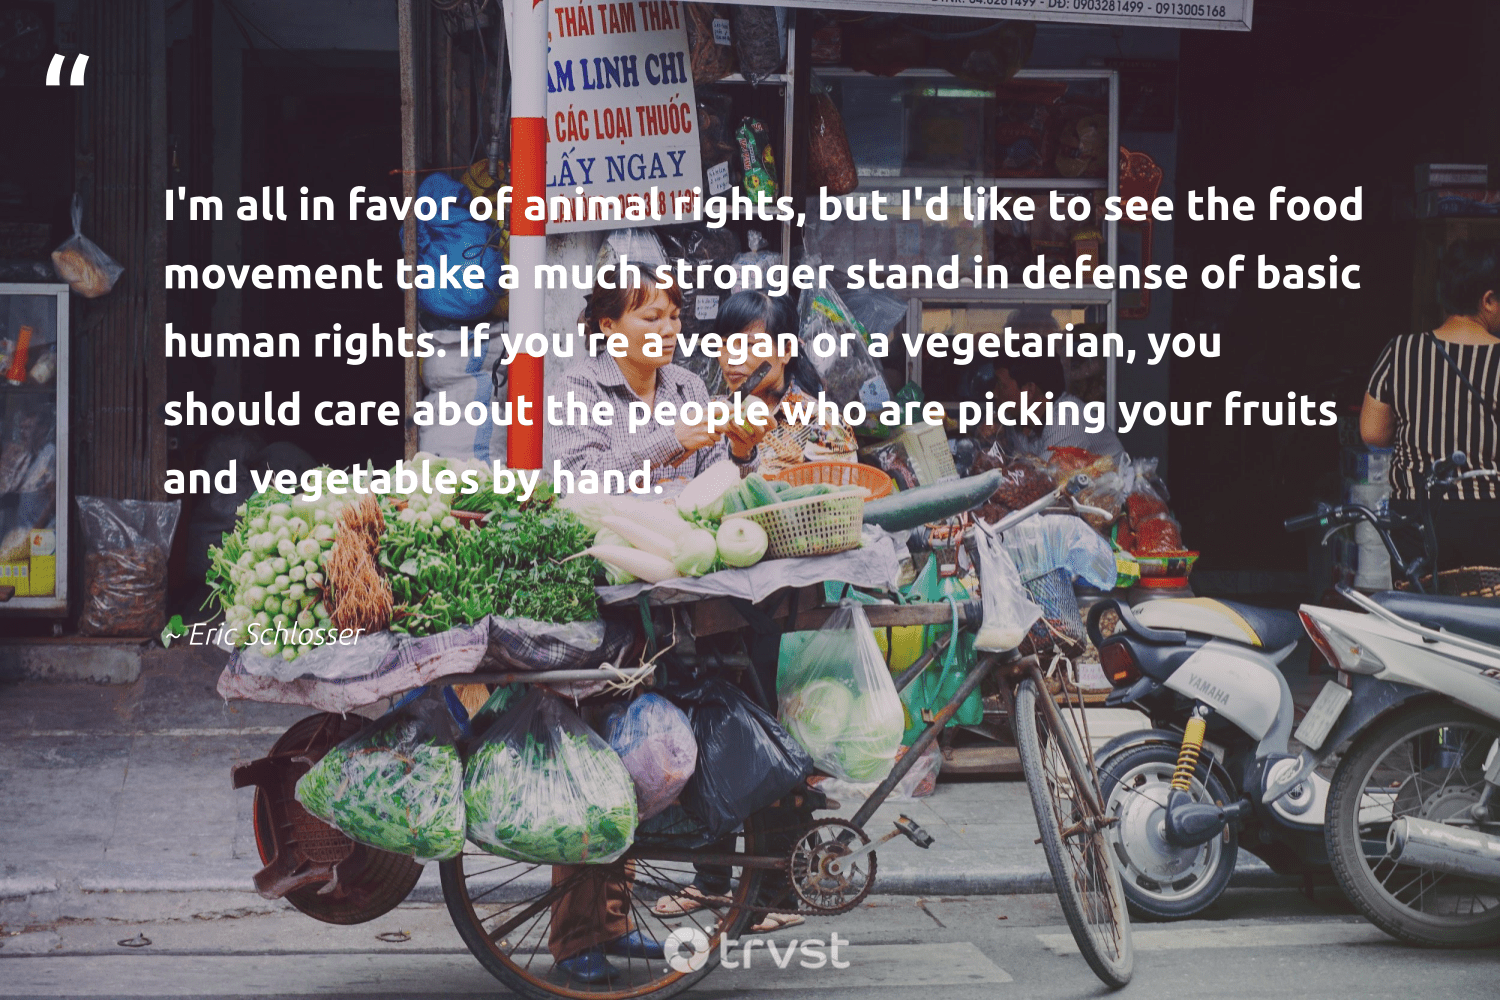 """I'm all in favor of animal rights, but I'd like to see the food movement take a much stronger stand in defense of basic human rights. If you're a vegan or a vegetarian, you should care about the people who are picking your fruits and vegetables by hand.""  - Eric Schlosser #trvst #quotes #vegan #animal #humanrights #food #vegetarian #whatveganseat #animallovers #green #greenliving #collectiveaction"